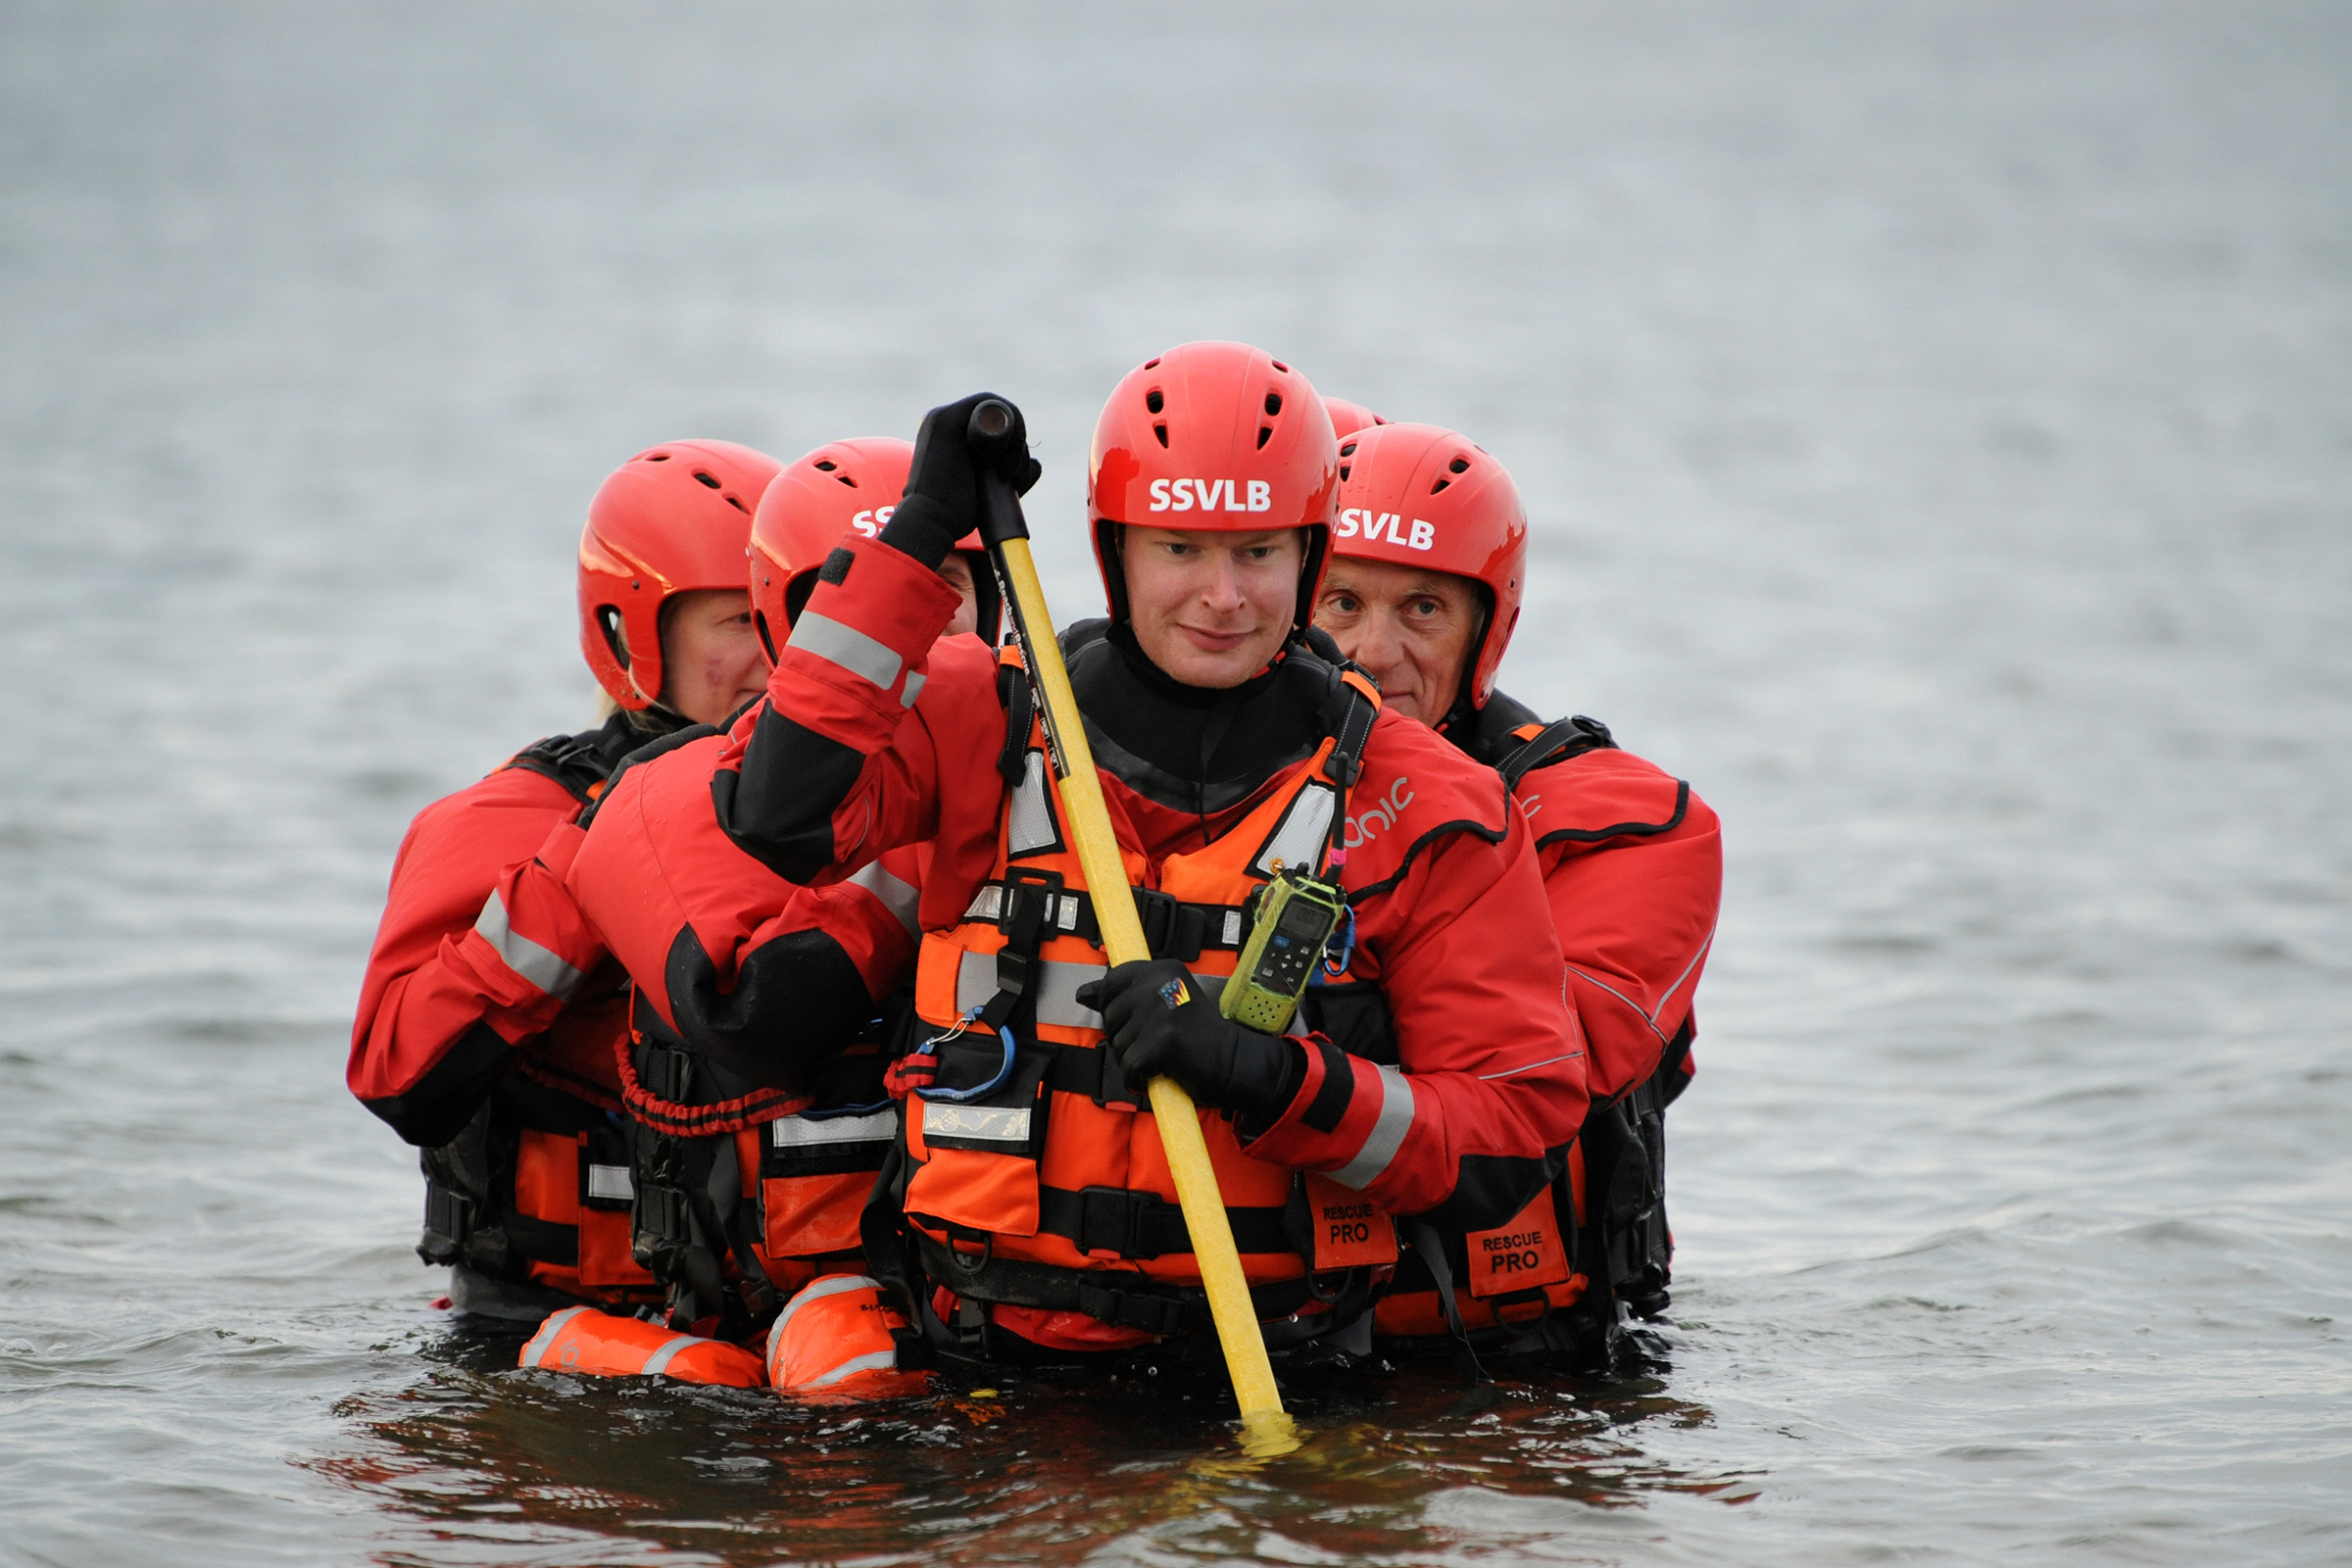 South Shields Volunteer Lifebrigade (SSVLB) - water rescue training at Littlehaven, South Shields.